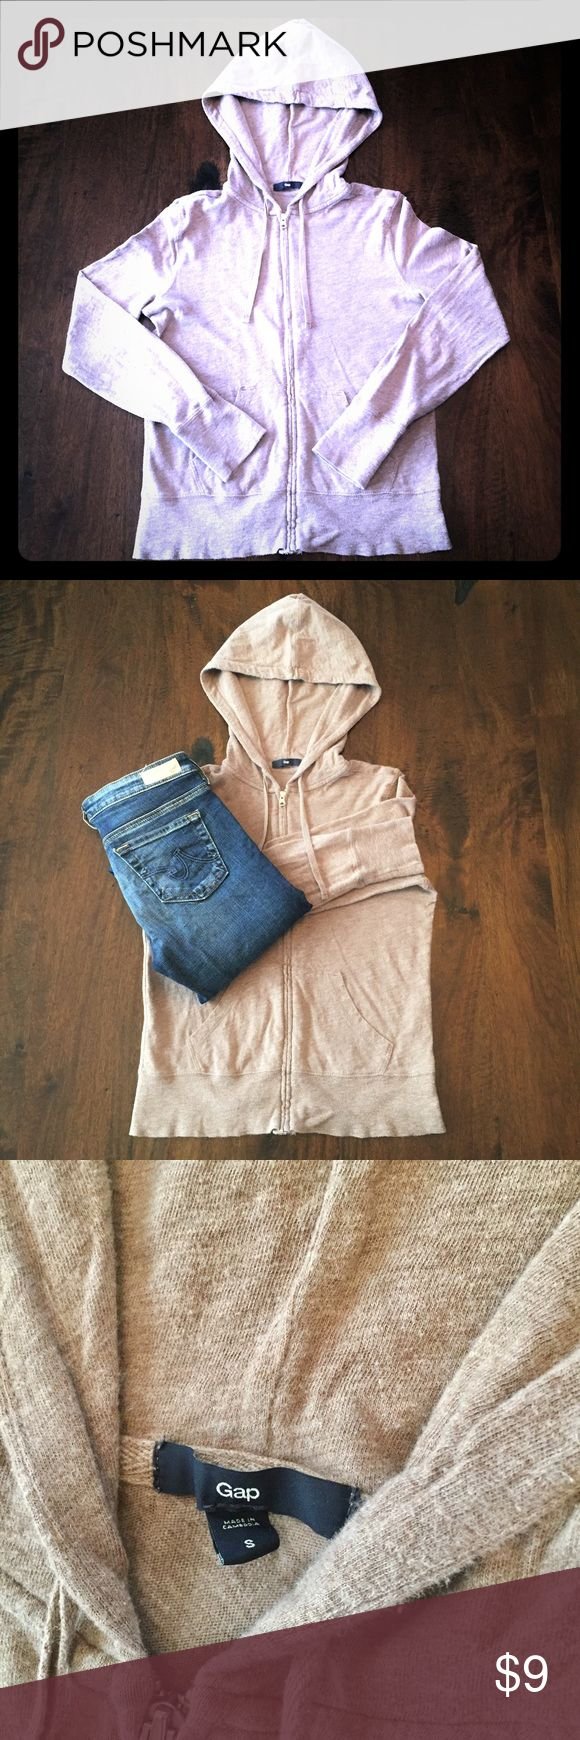 Gap Essential Zip-Up Hoodie (Women's S) You'll love this Essential Hoodie from the Gap! Garment washed for everyday softness. Lightweight 100% cotton. Long sleeves. Hoodie with drawstring tie. Kanga pockets at front. Size S. Beige color. Perfect for layering! GAP Tops Sweatshirts & Hoodies